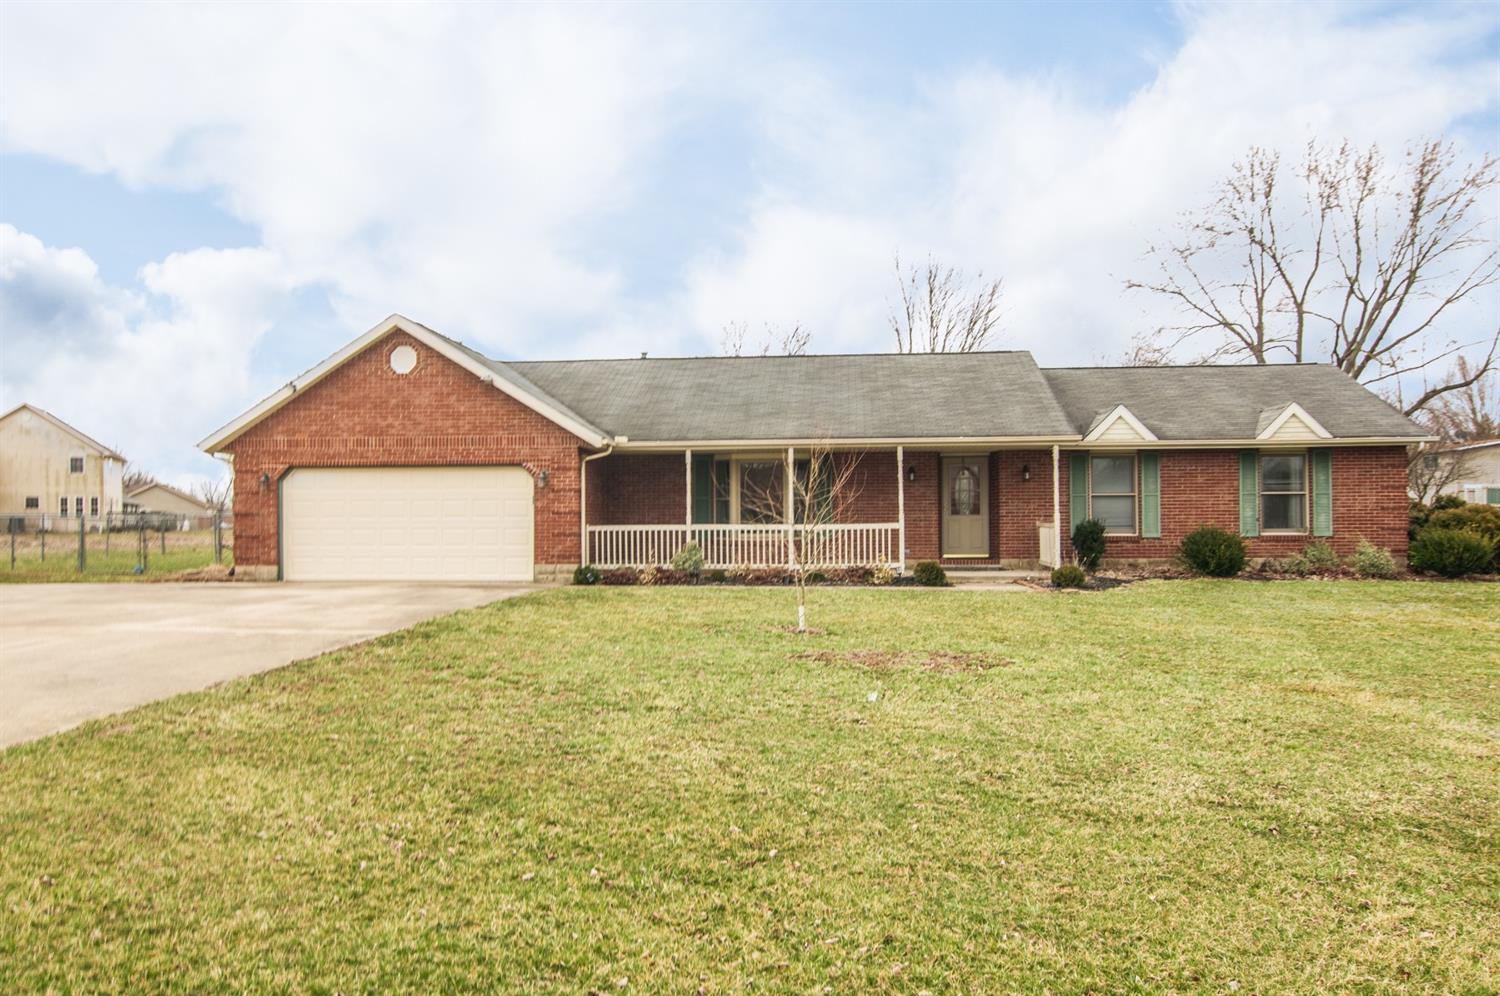 524 Varde Dr Preble County, OH